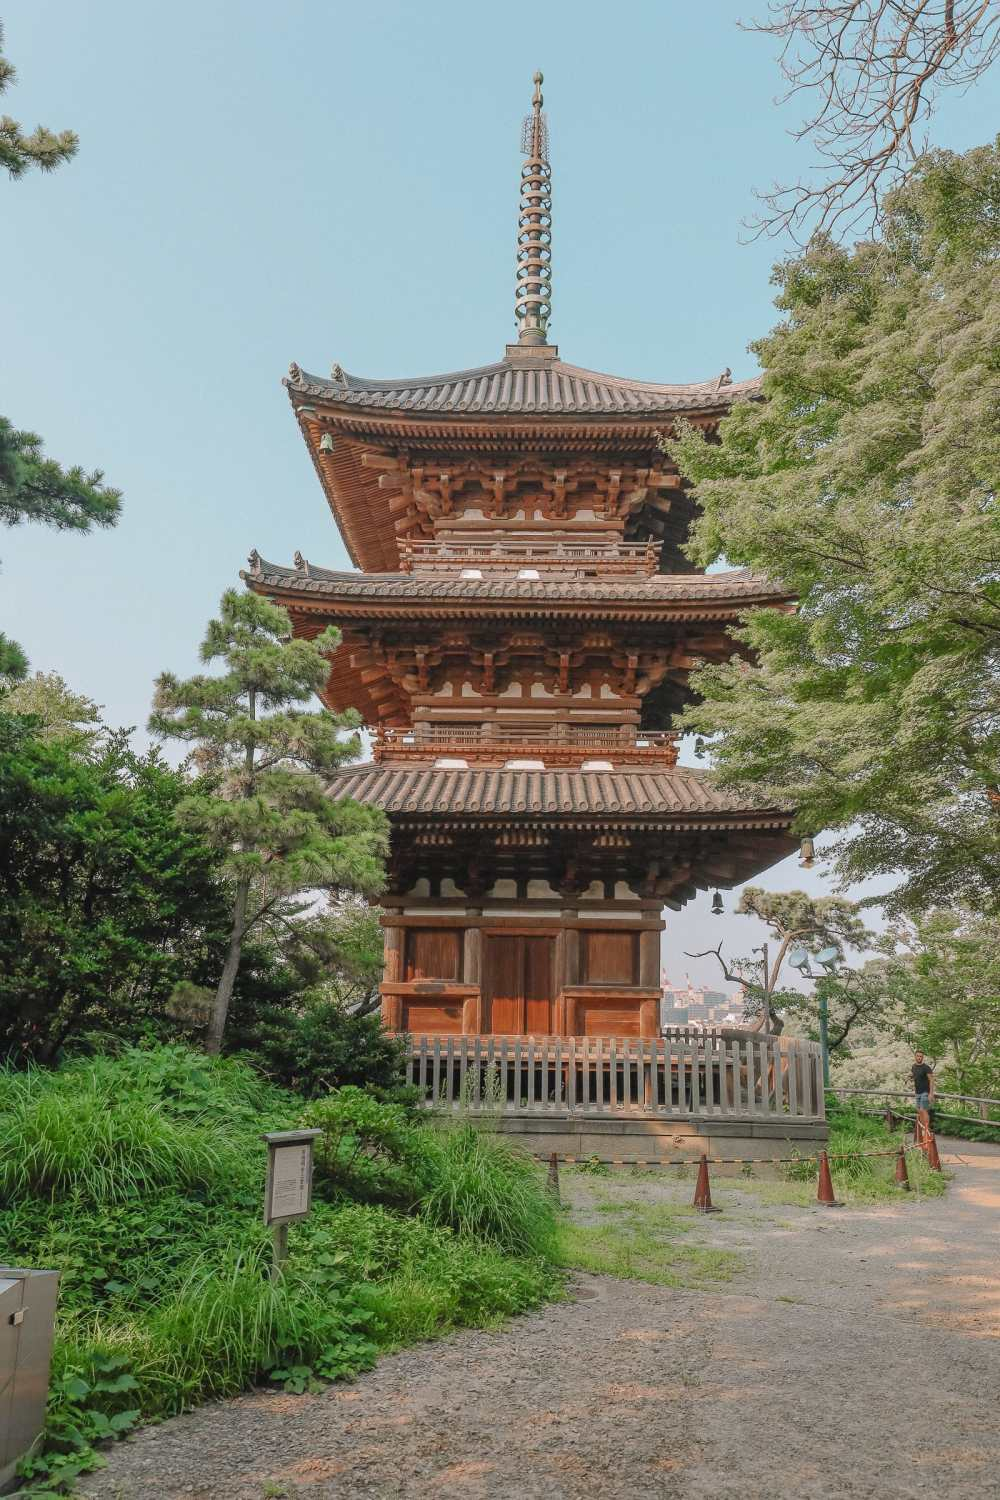 Exploring Sankeien Garden, Markets And The Mall In Yokohama - Japan (12)